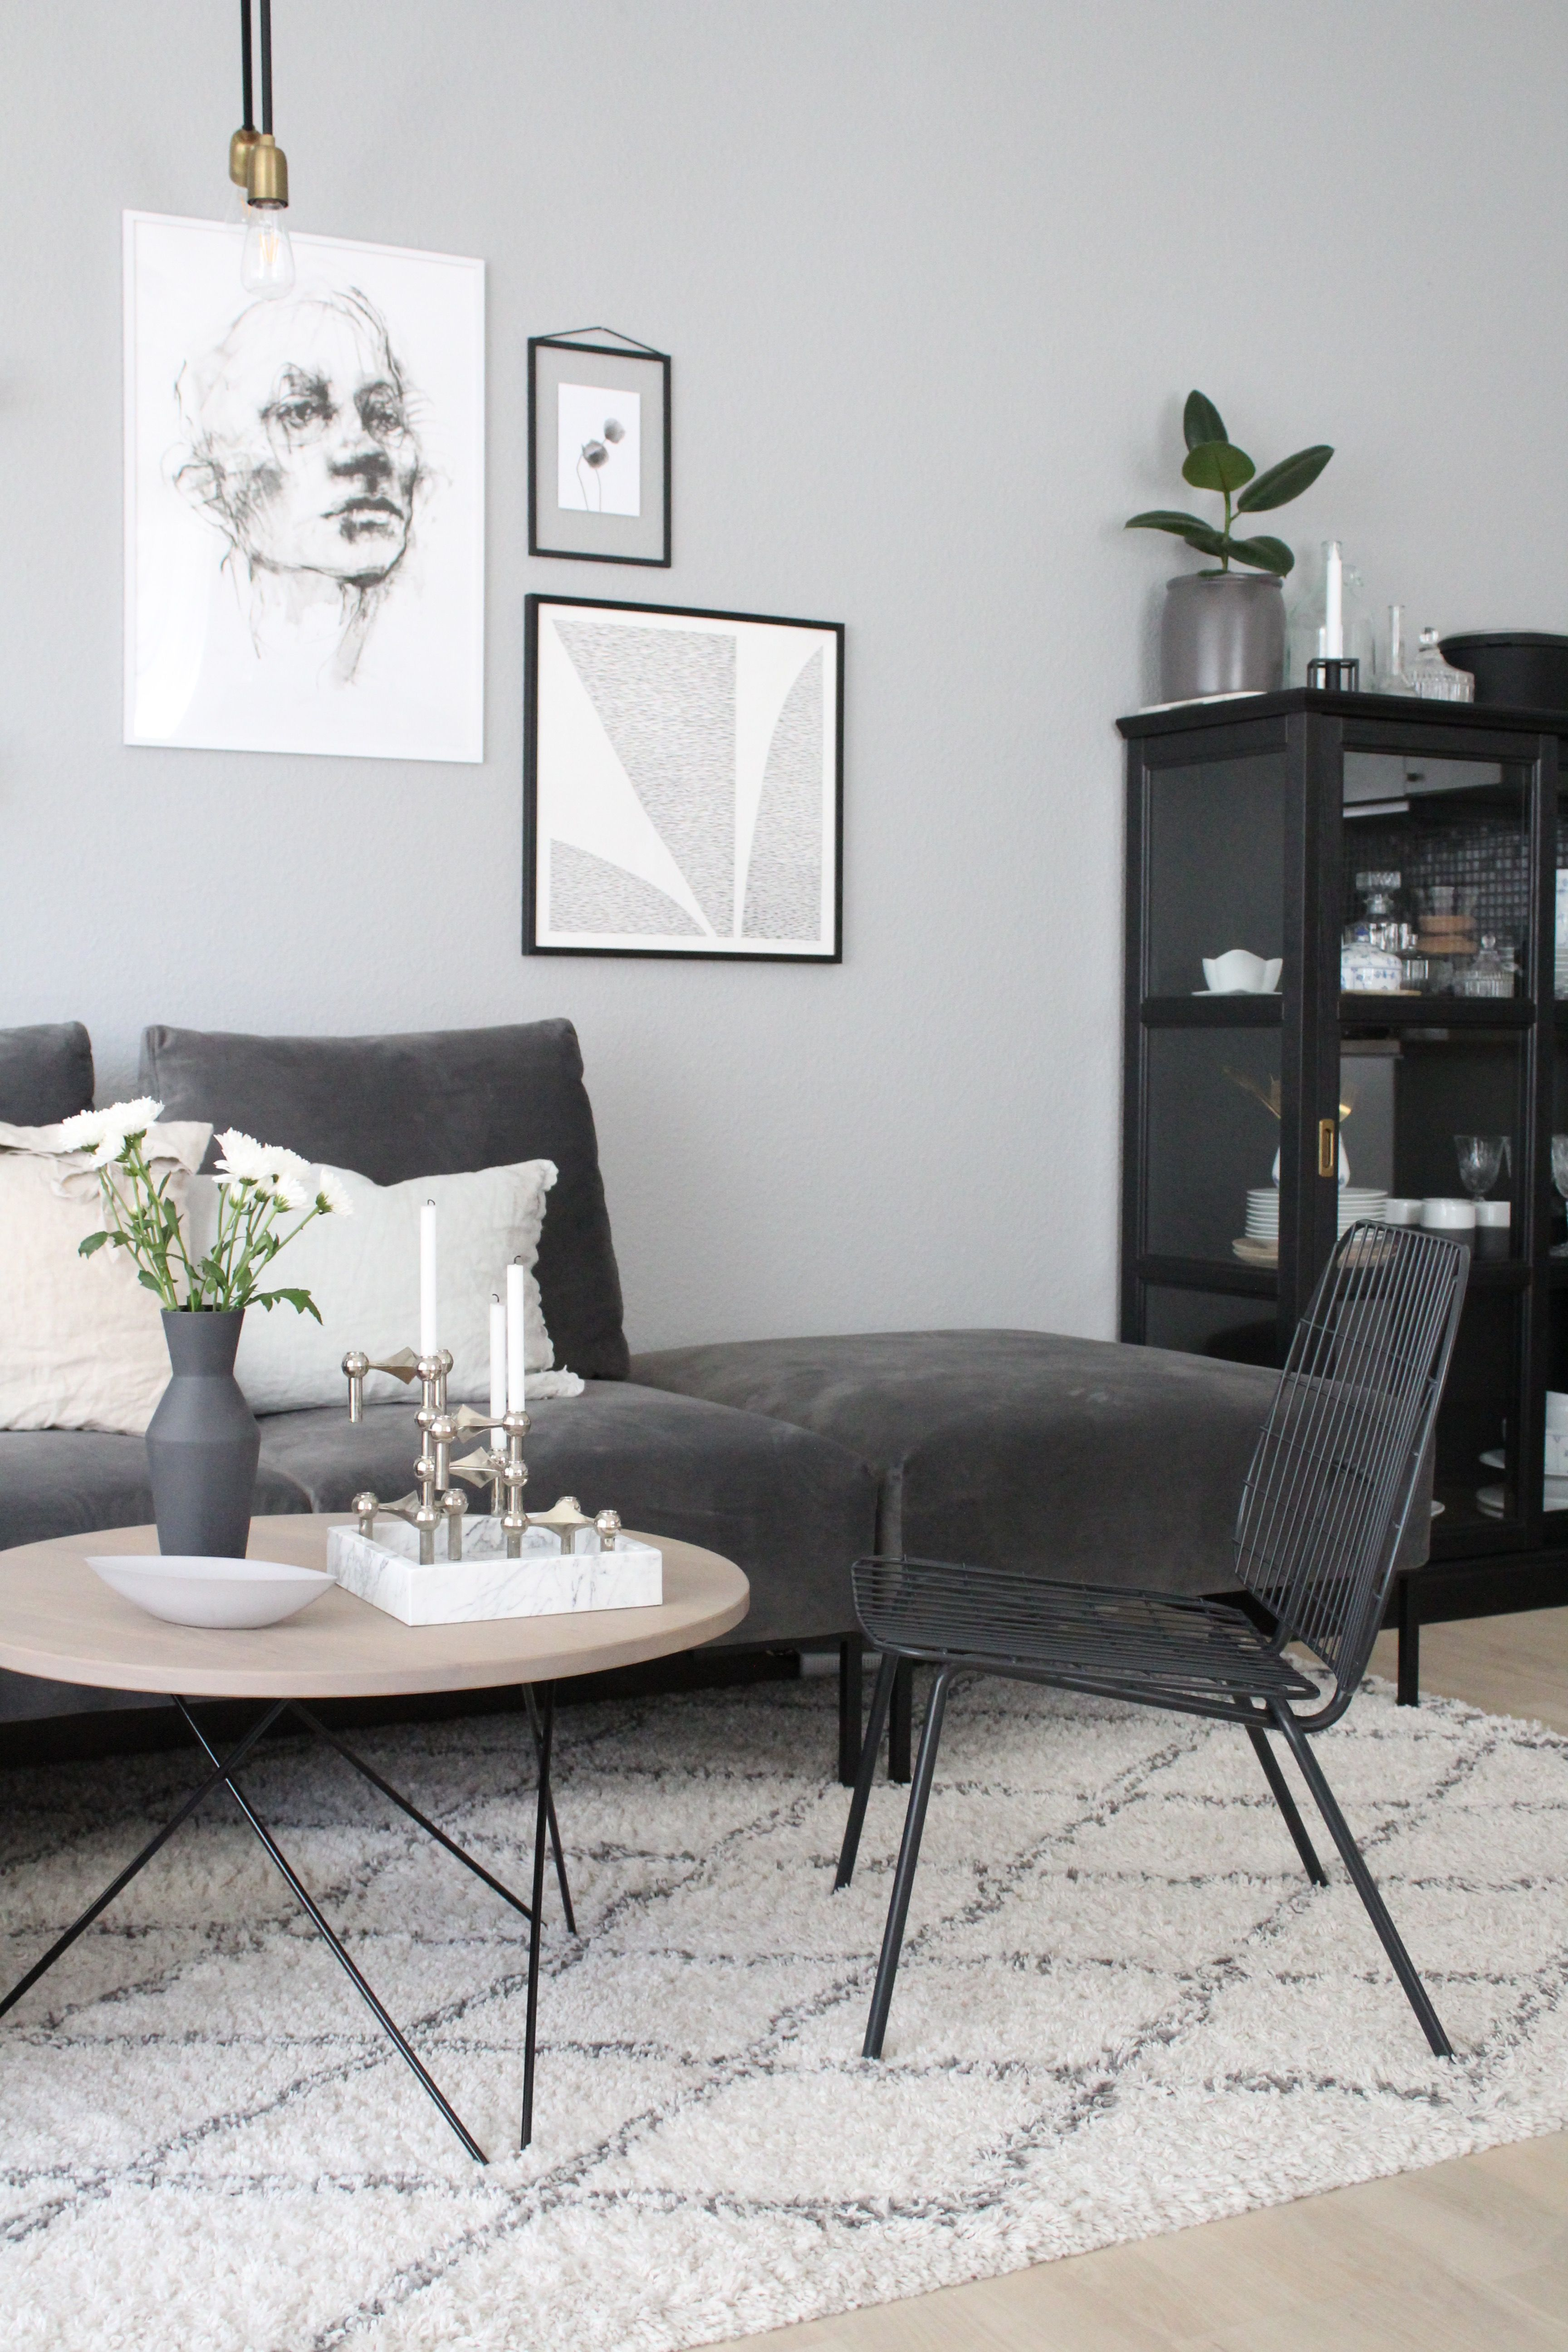 WM String Lounge Chair by Menu | Gray interior, Interiors and ...